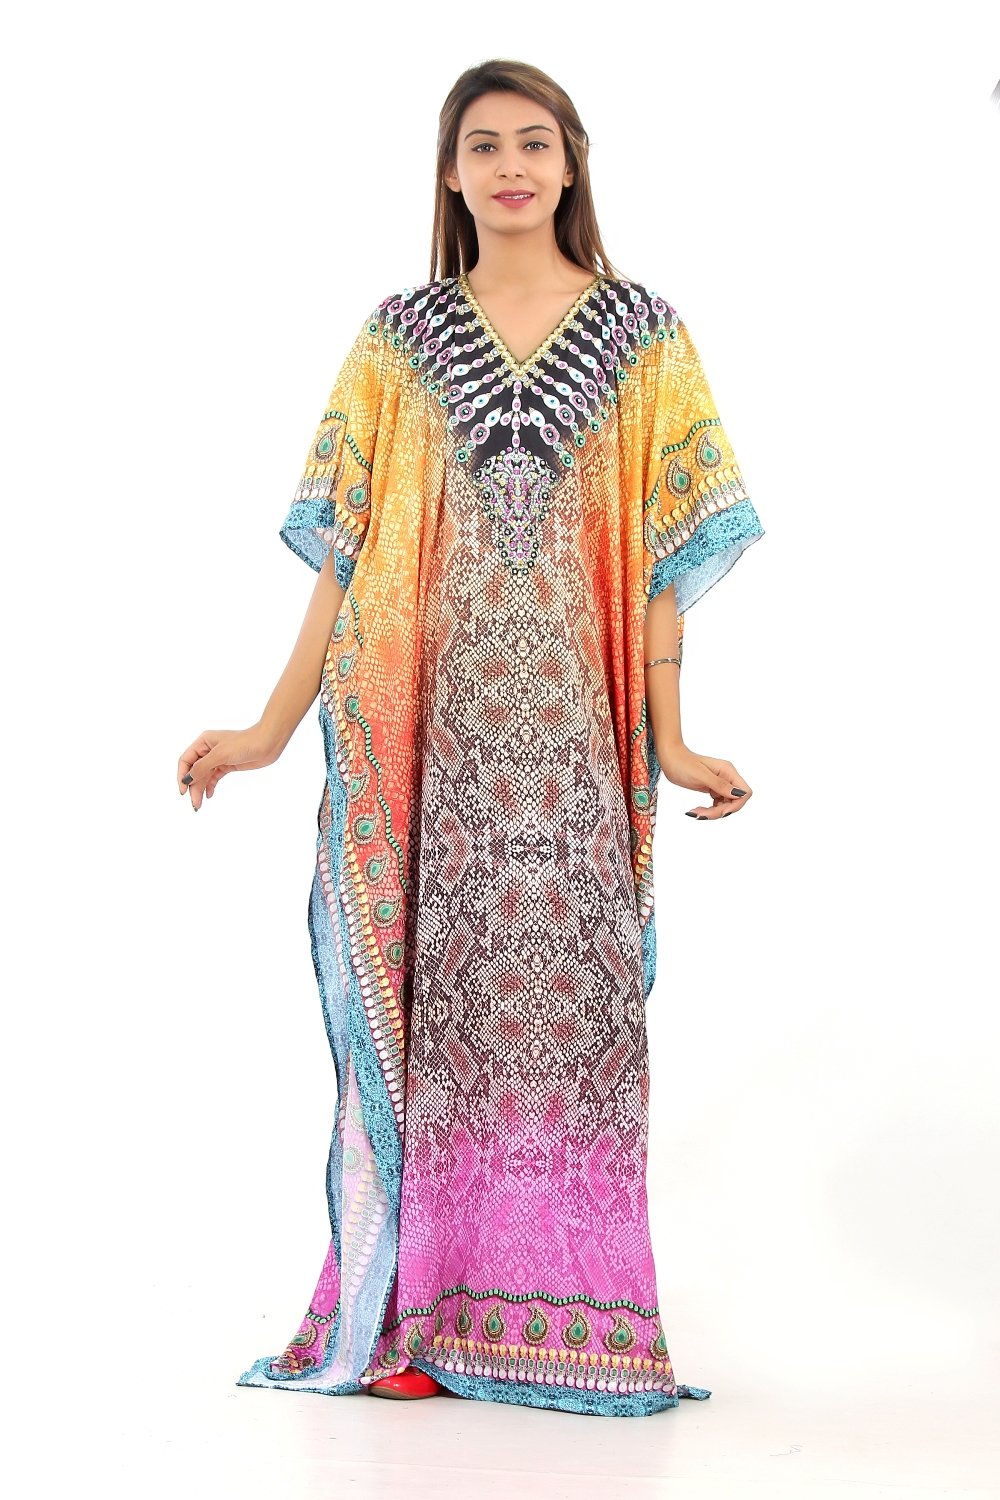 Silk looks and feel kaftan one piece dress on sale beach cover up hot look luxuries kaftan - Silk kaftan